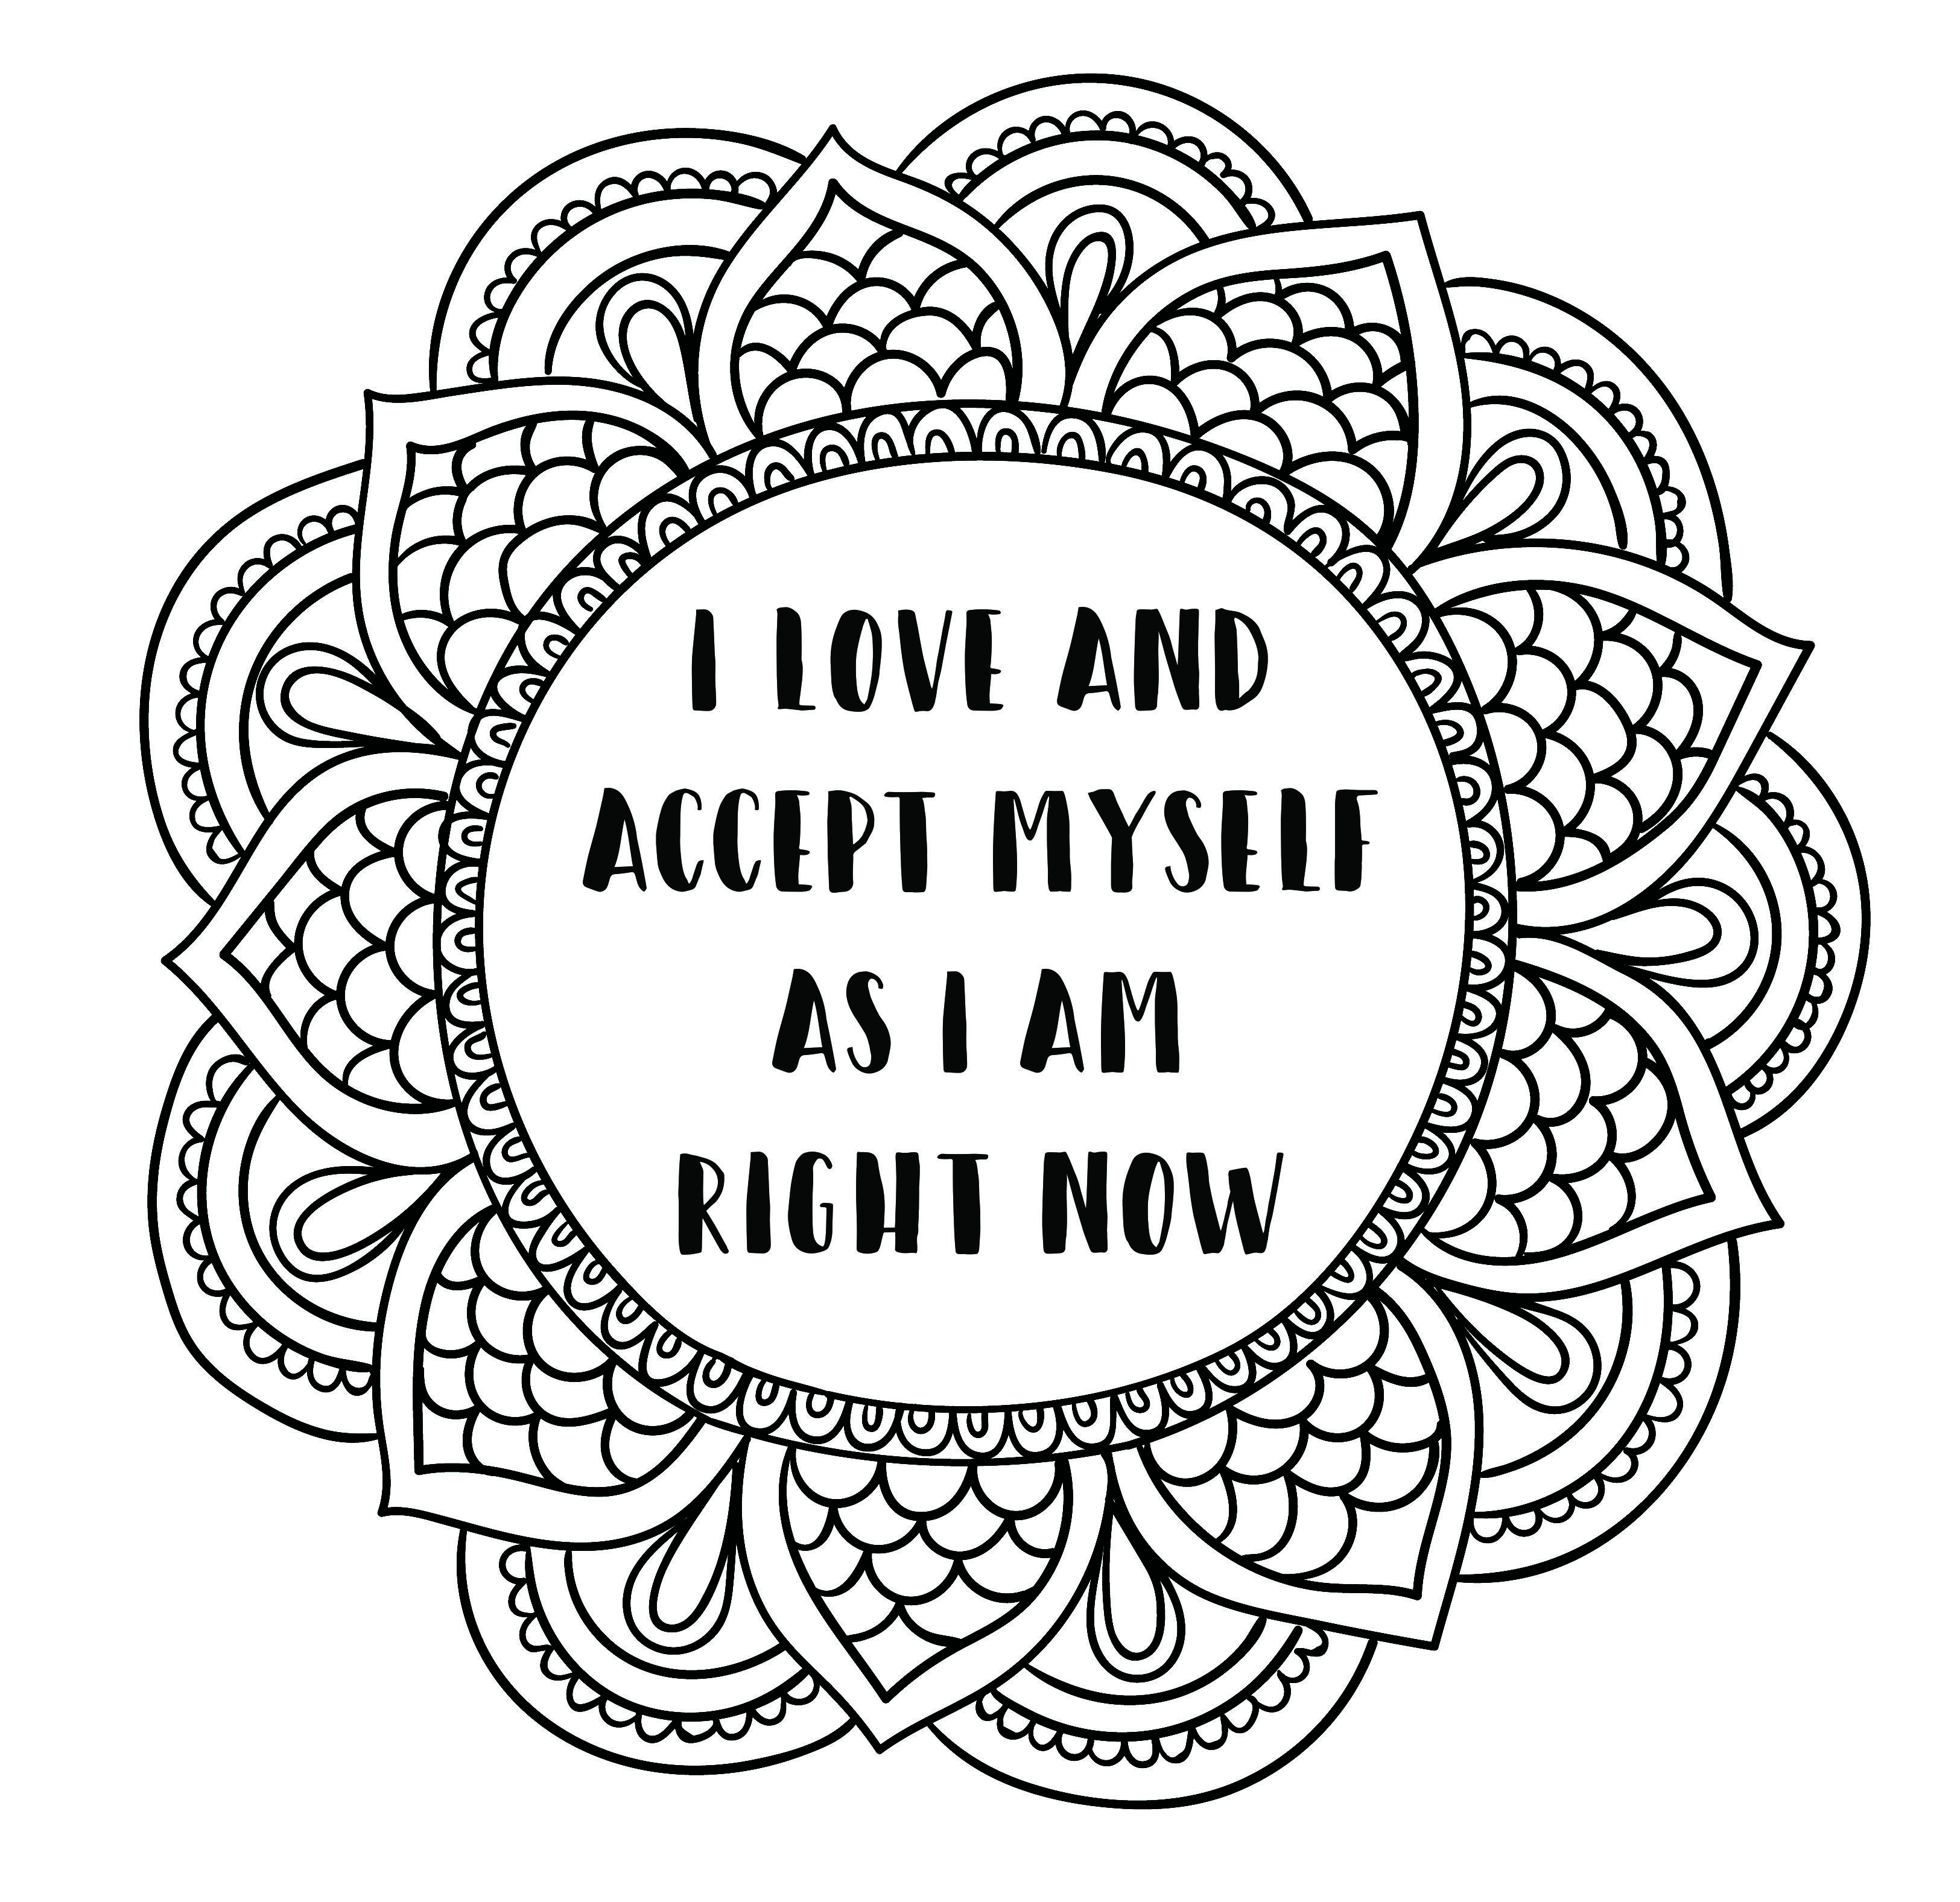 Mandala Style Coloring Page Printable Self Love Affirmation